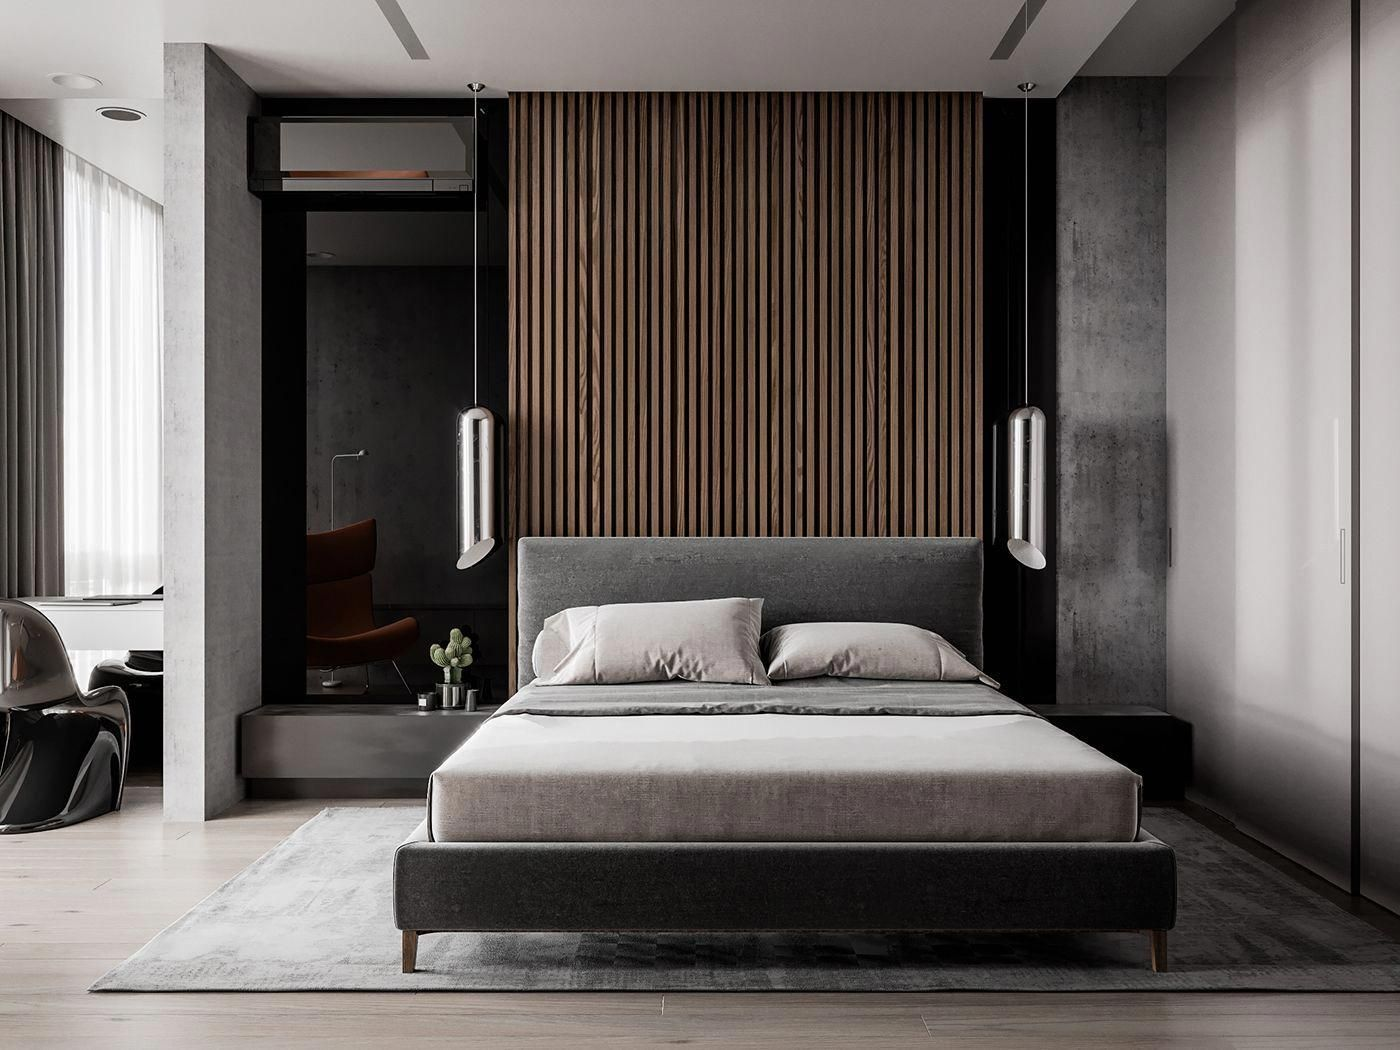 Bedroom Ideas Scan This Pleasantly Comfortable Decor 1 Must Know Idea Reference 3709517208 Modernbedr Luxurious Bedrooms Bedroom Design Contemporary Bedroom